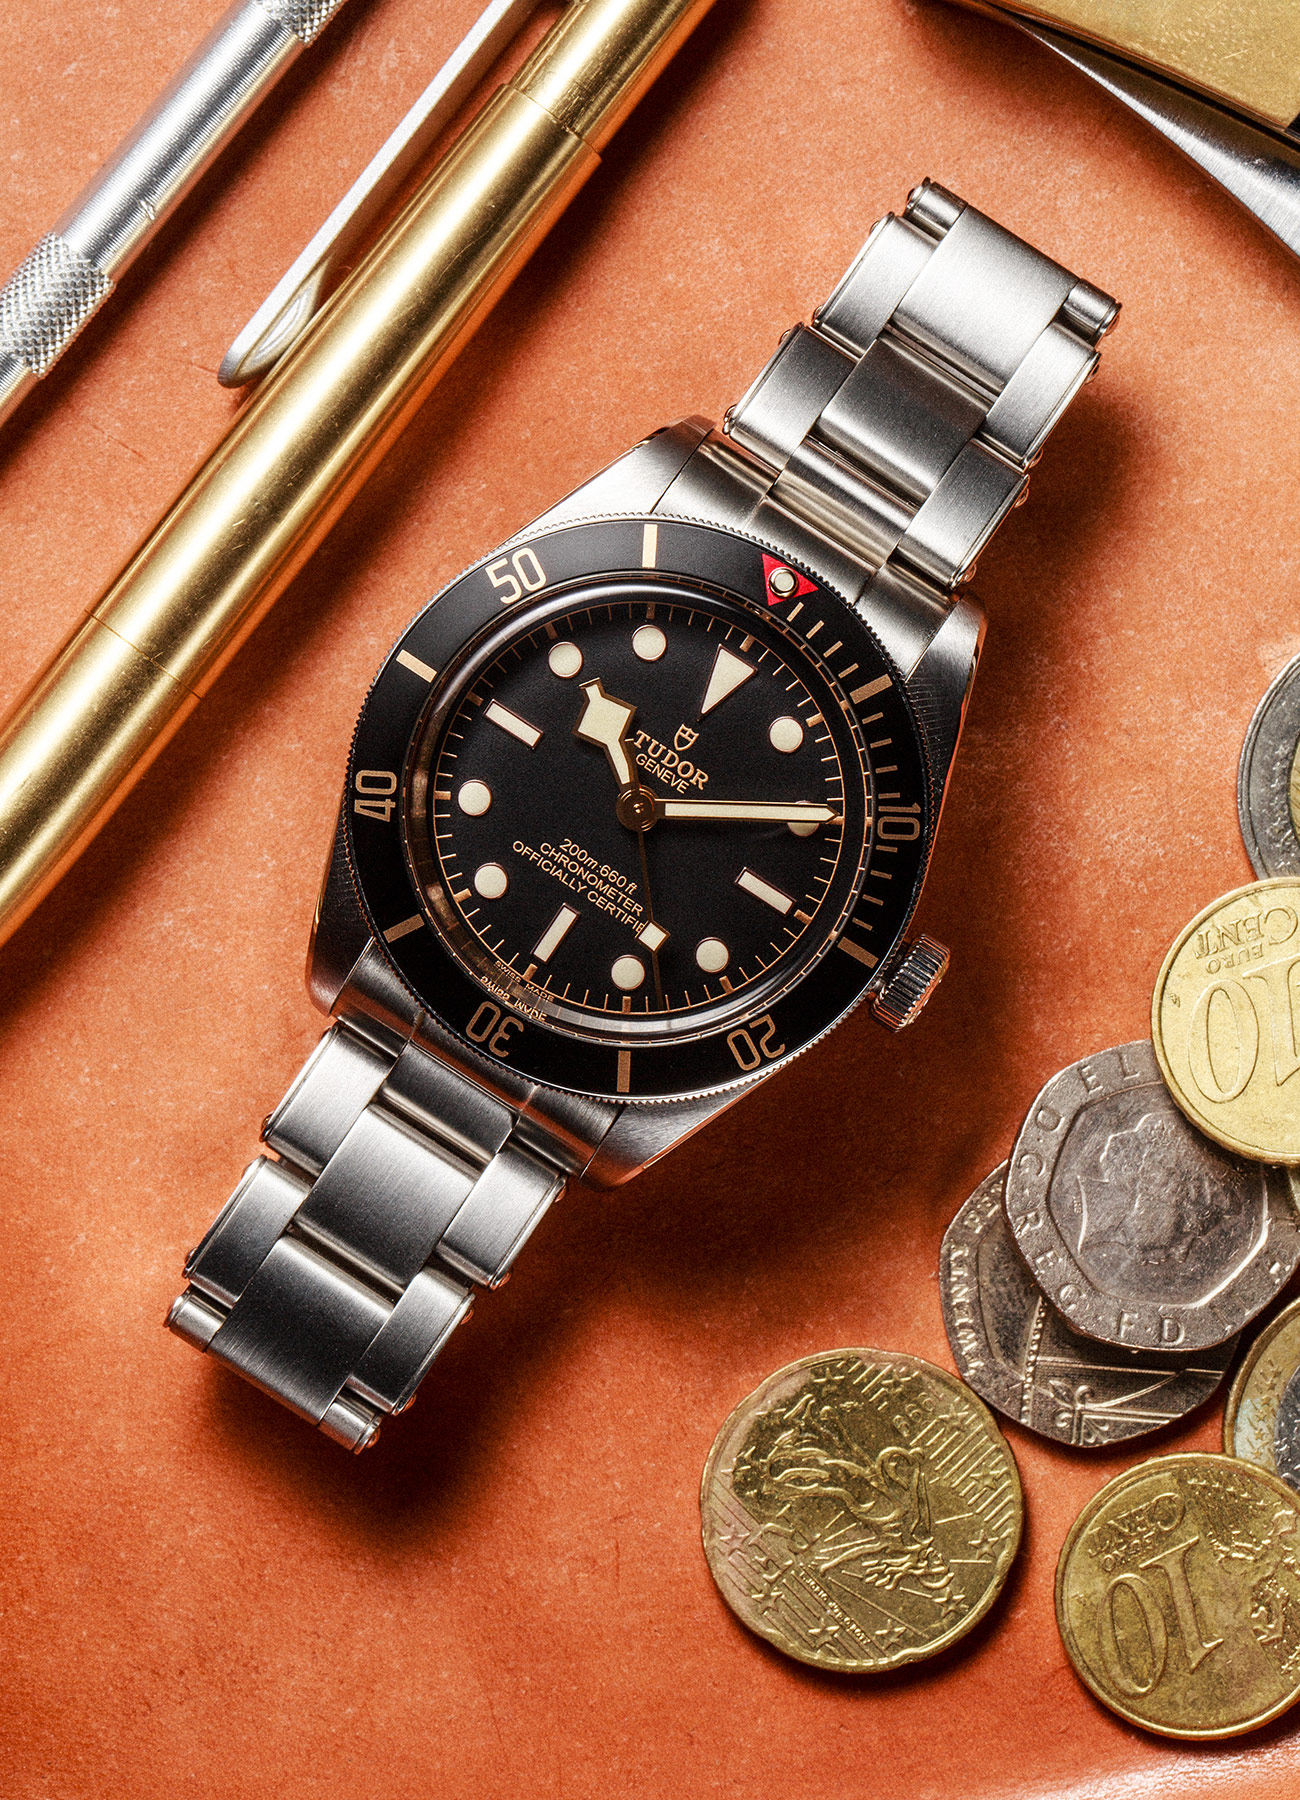 0184e53d2e0 The problem with so many vintage watch reissues is that they re made much  bigger than their original counterparts to appeal to modern sensibilities.  But ...